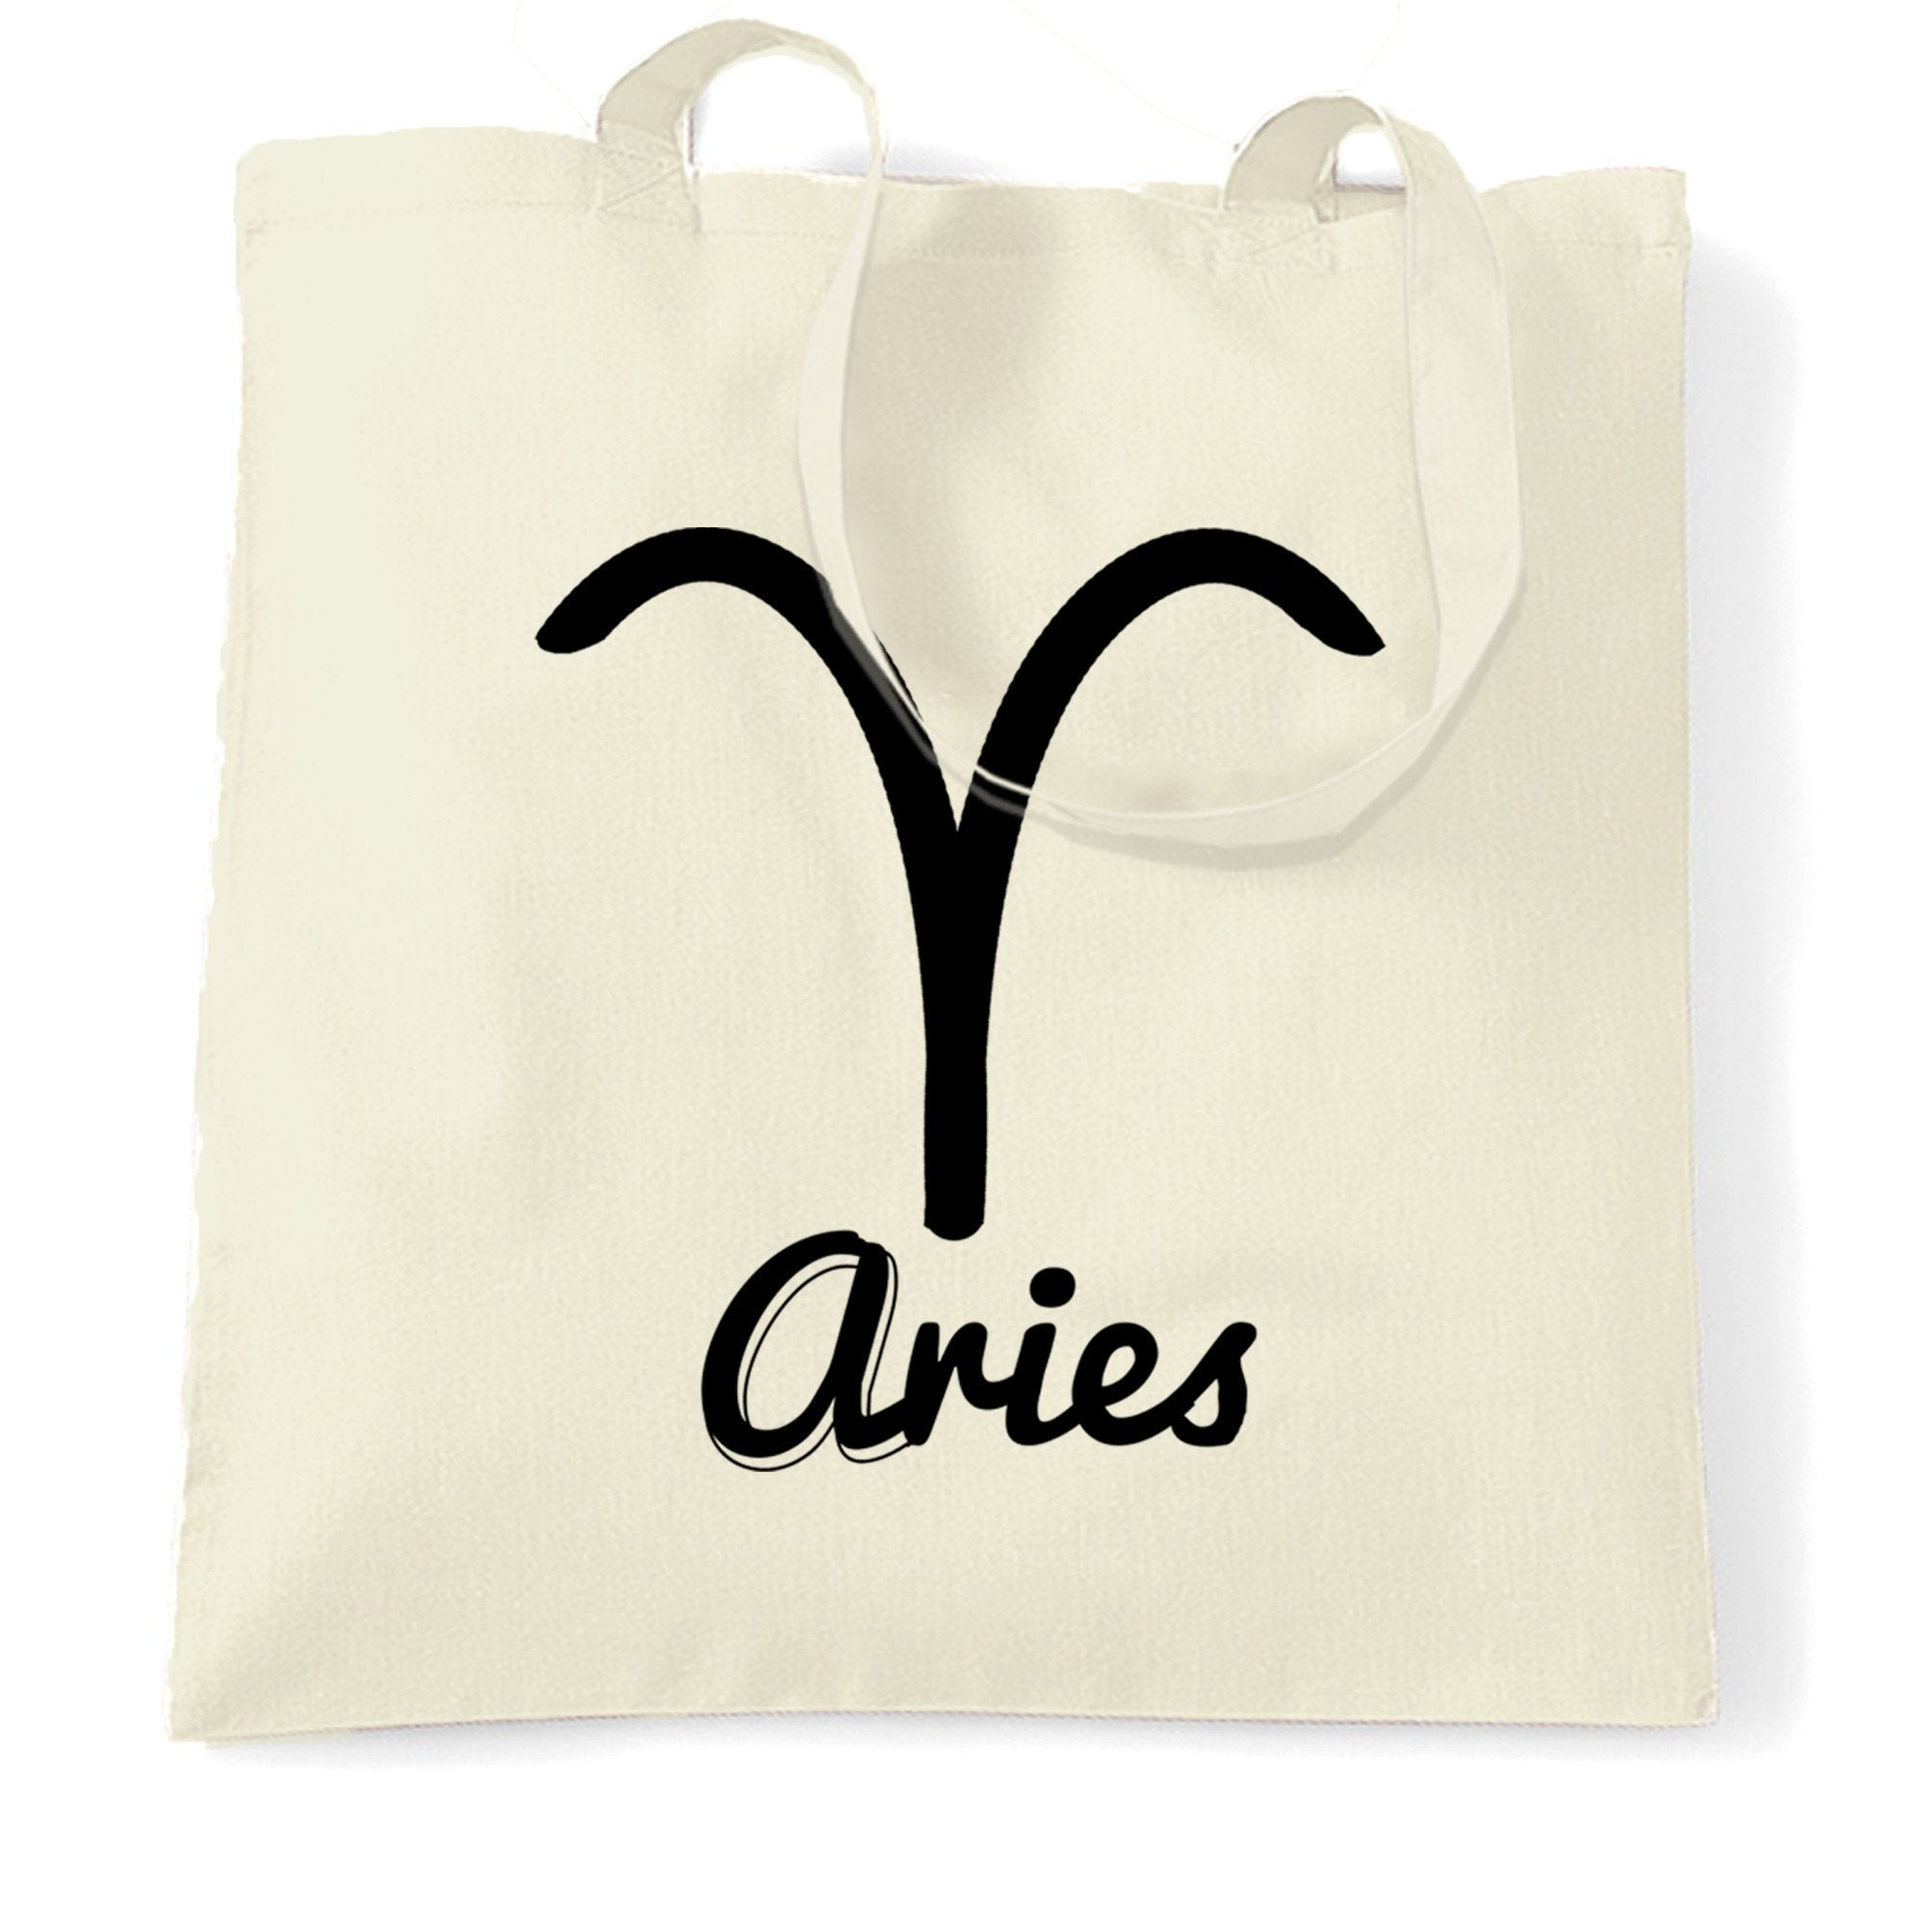 Horoscope Tote Bag Aries Zodiac Star Sign Birthday